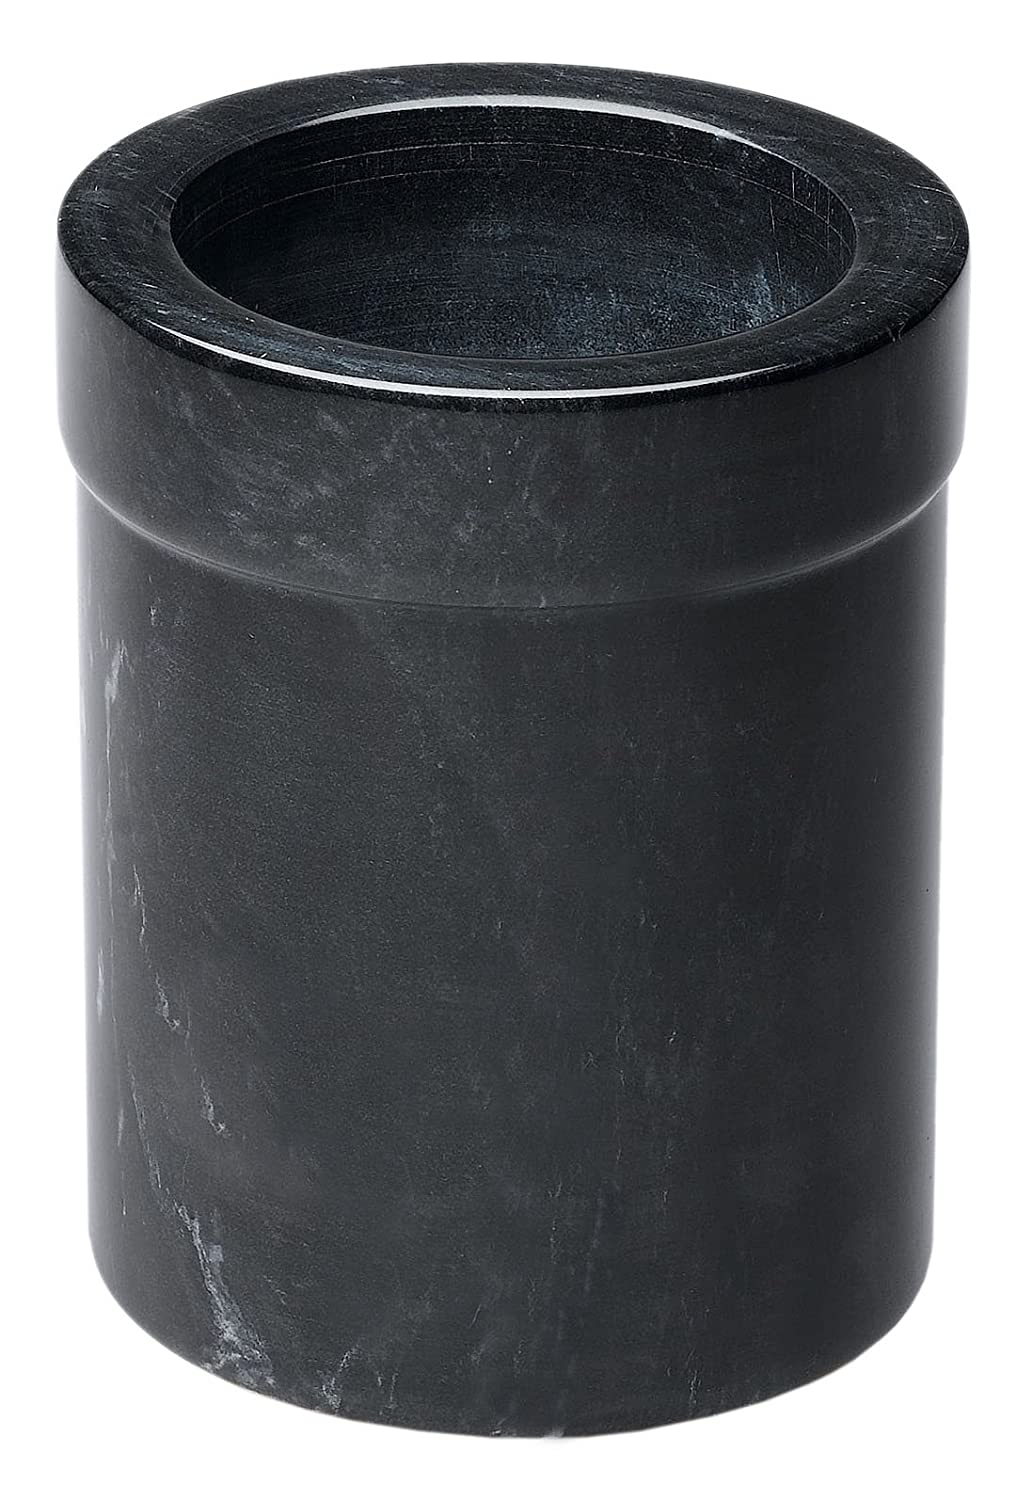 Oenophilia Marble Wine Chiller - Black 183032 HWO-183032-1A-b